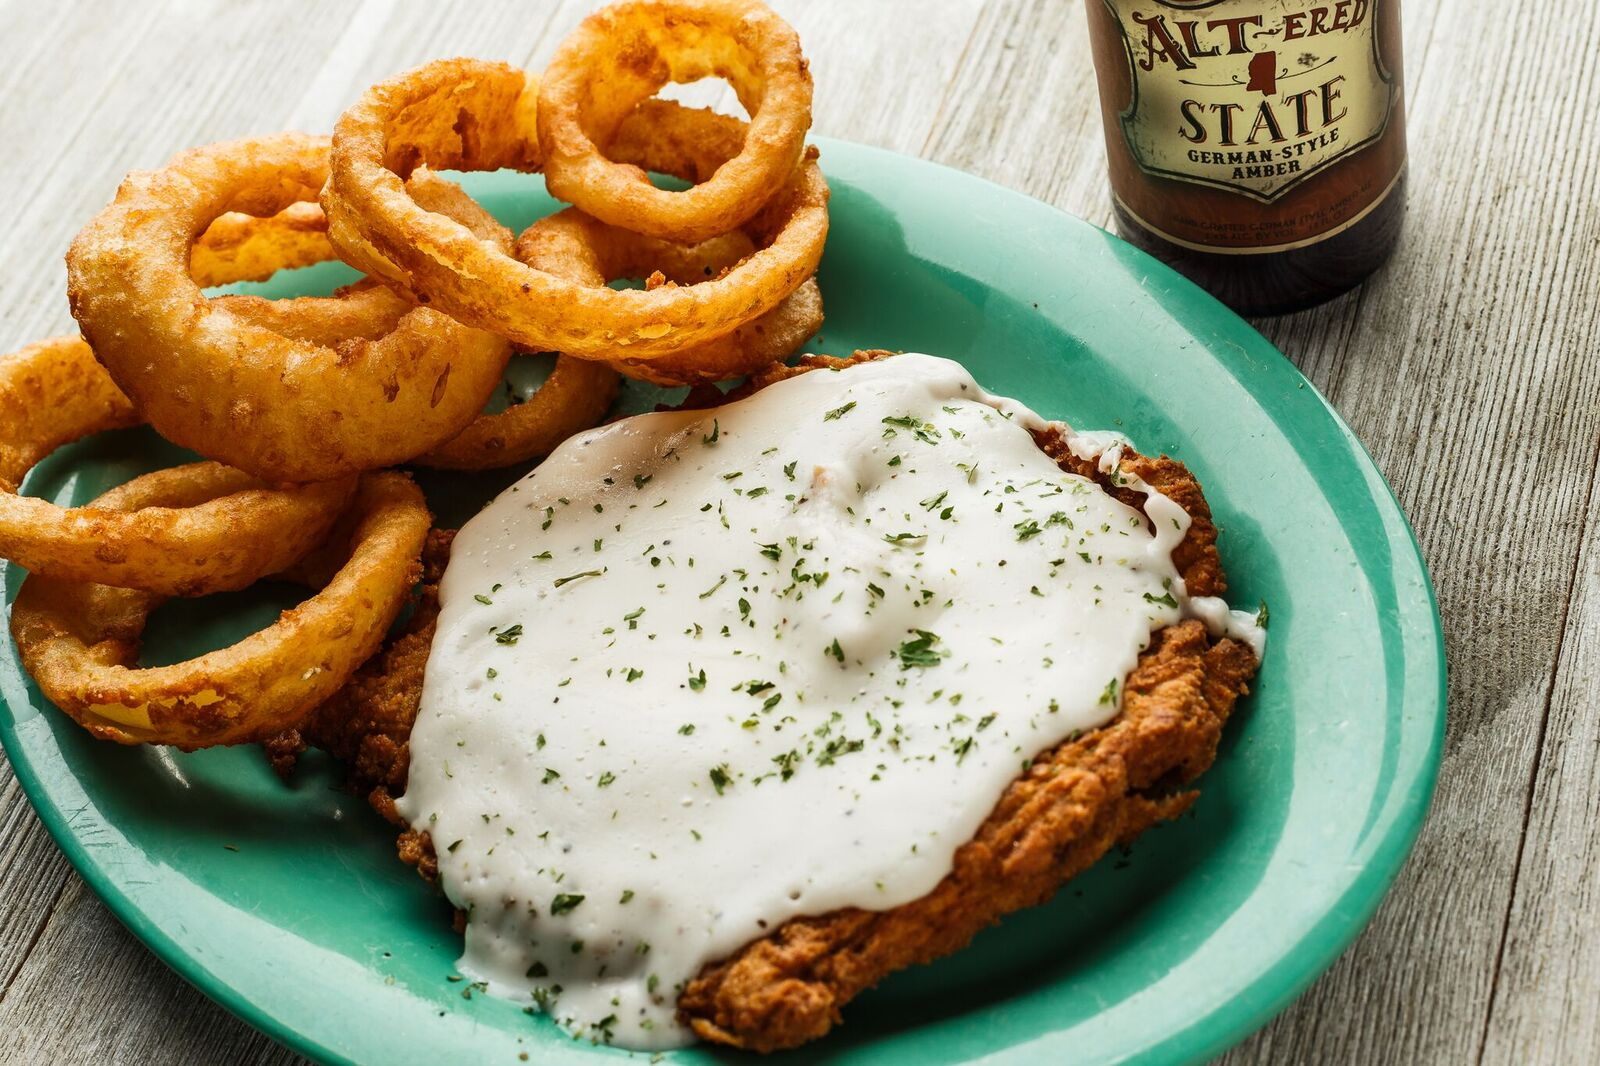 Fried chicken topped with white sauce and a side of onion rings